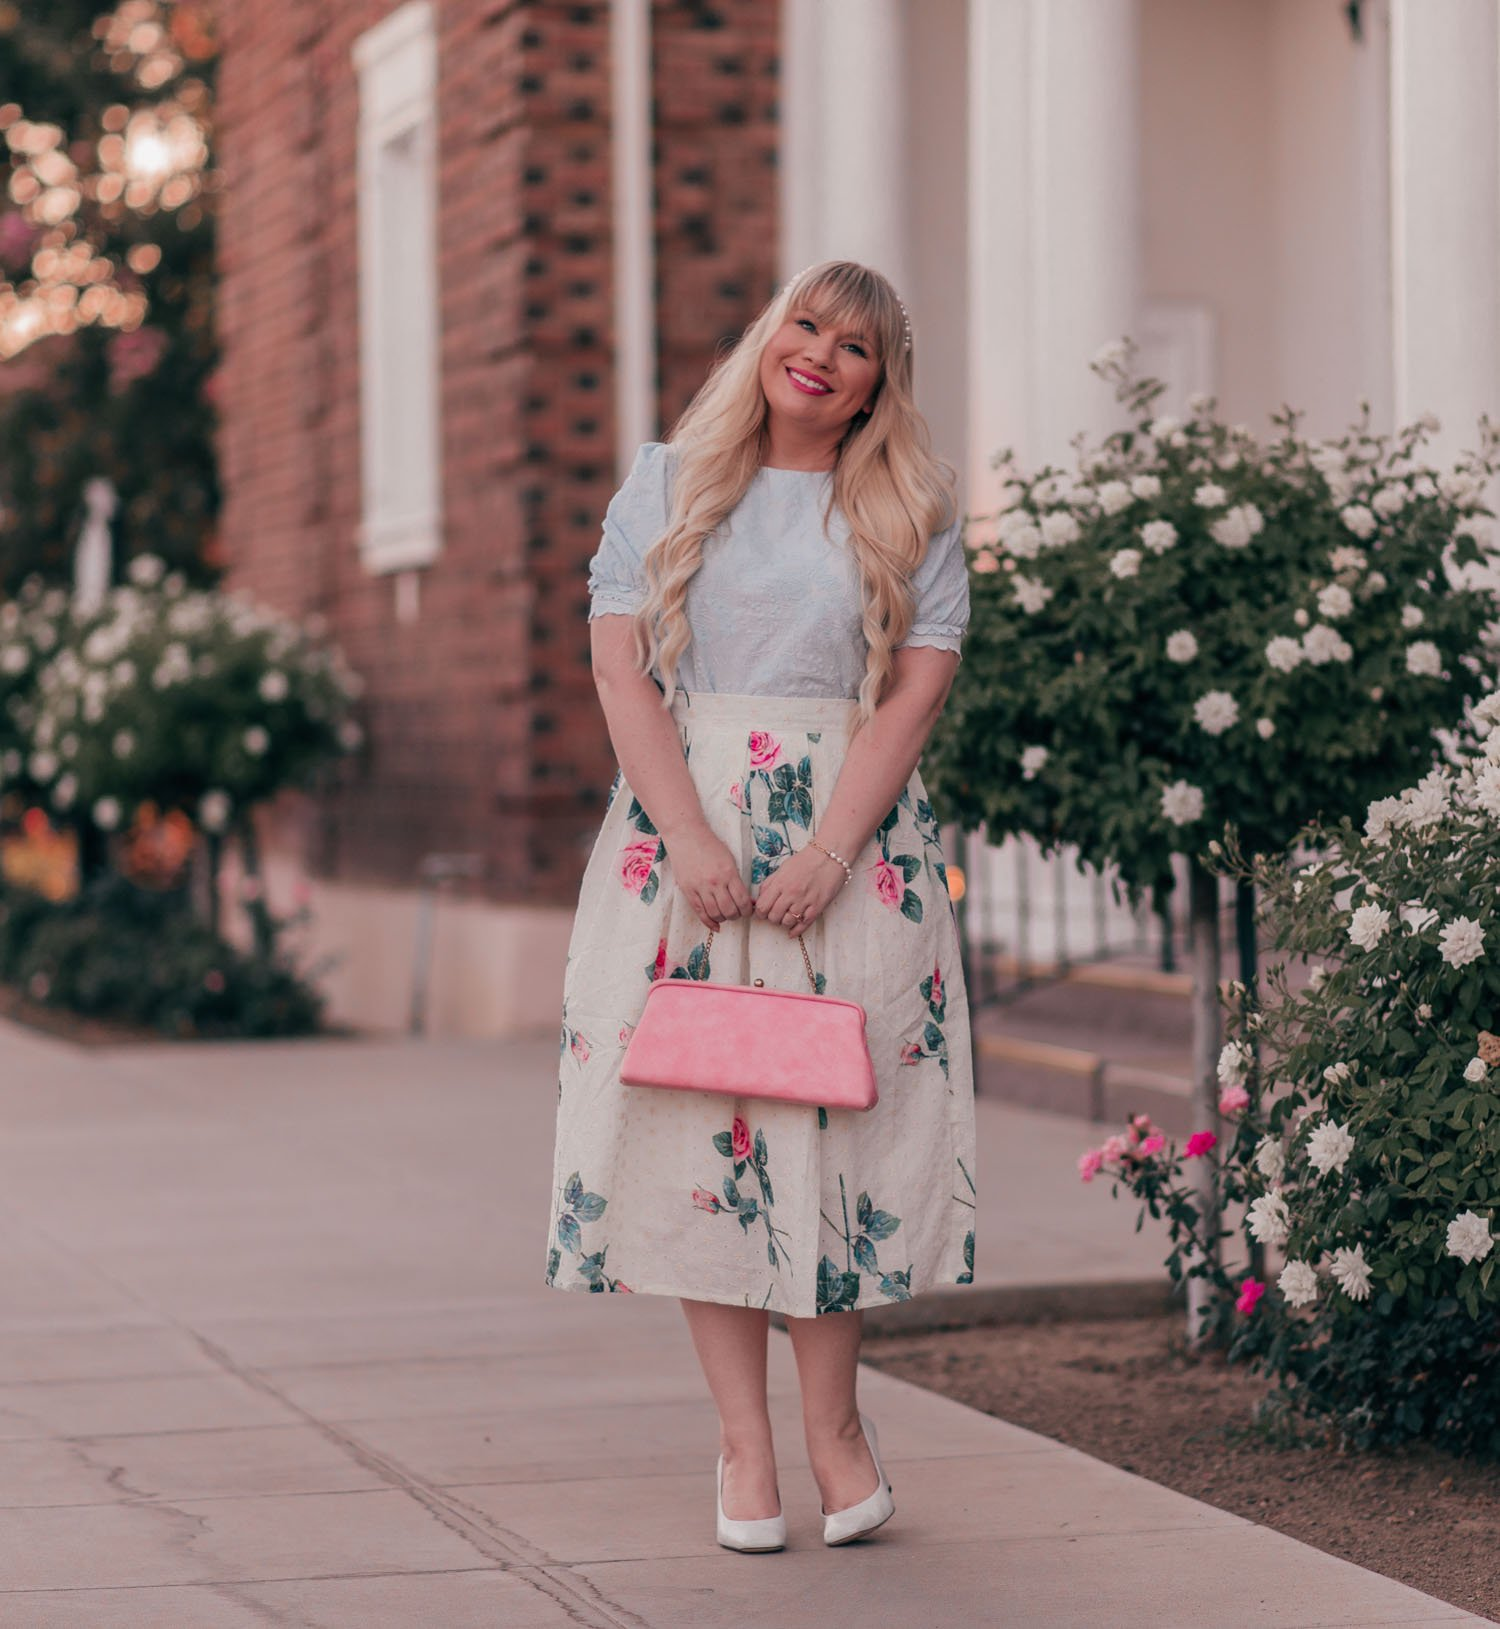 Feminine fashion blogger Elizabeth Hugen of Lizzie in Lace shares a pretty pastel vintage inspired floral skirt outfit along with a summer Chicwish haul